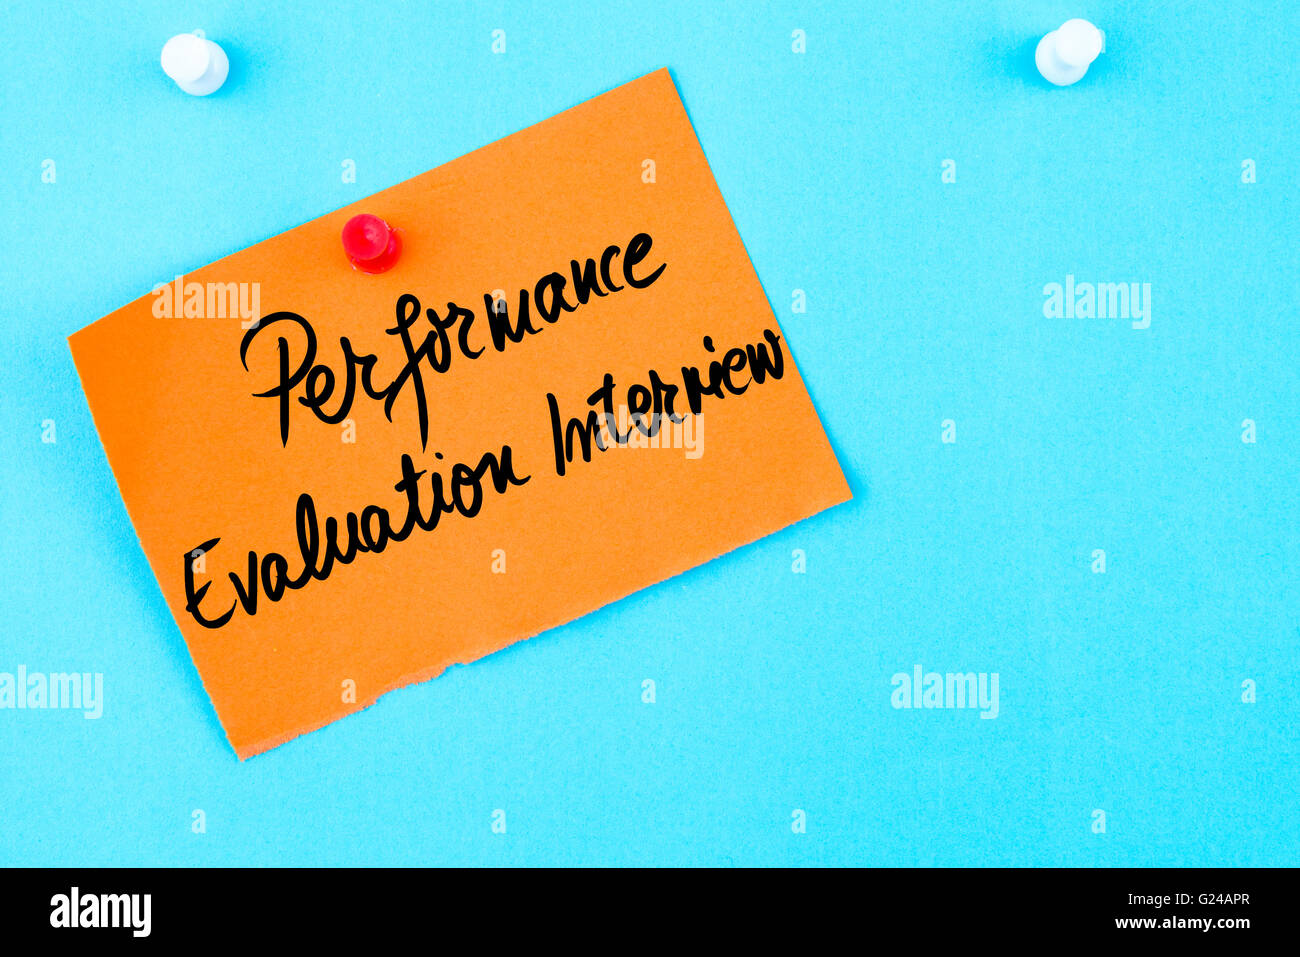 Performance Evaluation Interview written on orange paper note pinned on cork board with white thumbtack, copy space - Stock Image